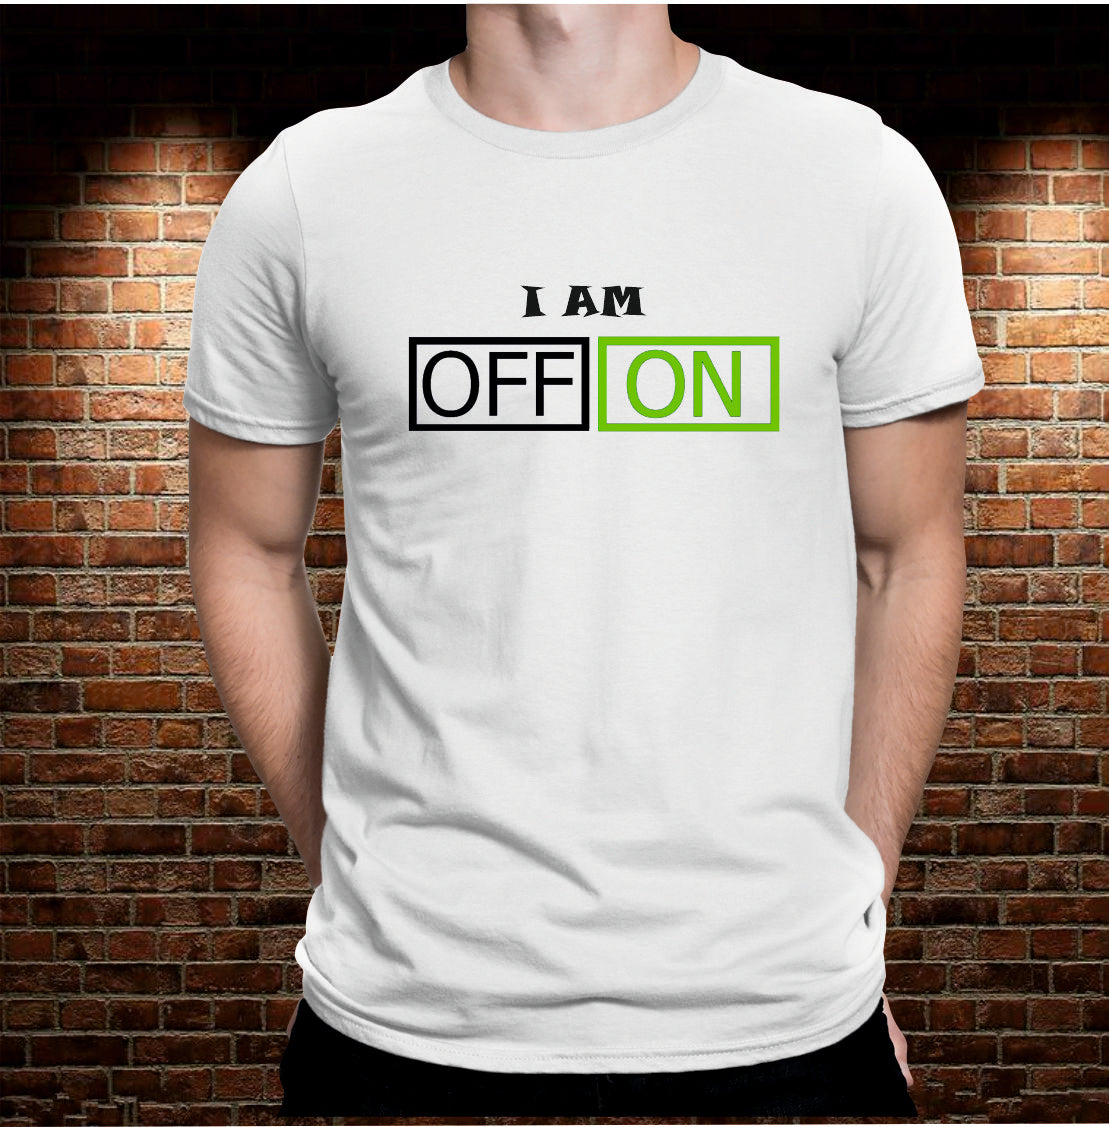 CAMISETA I AM ON